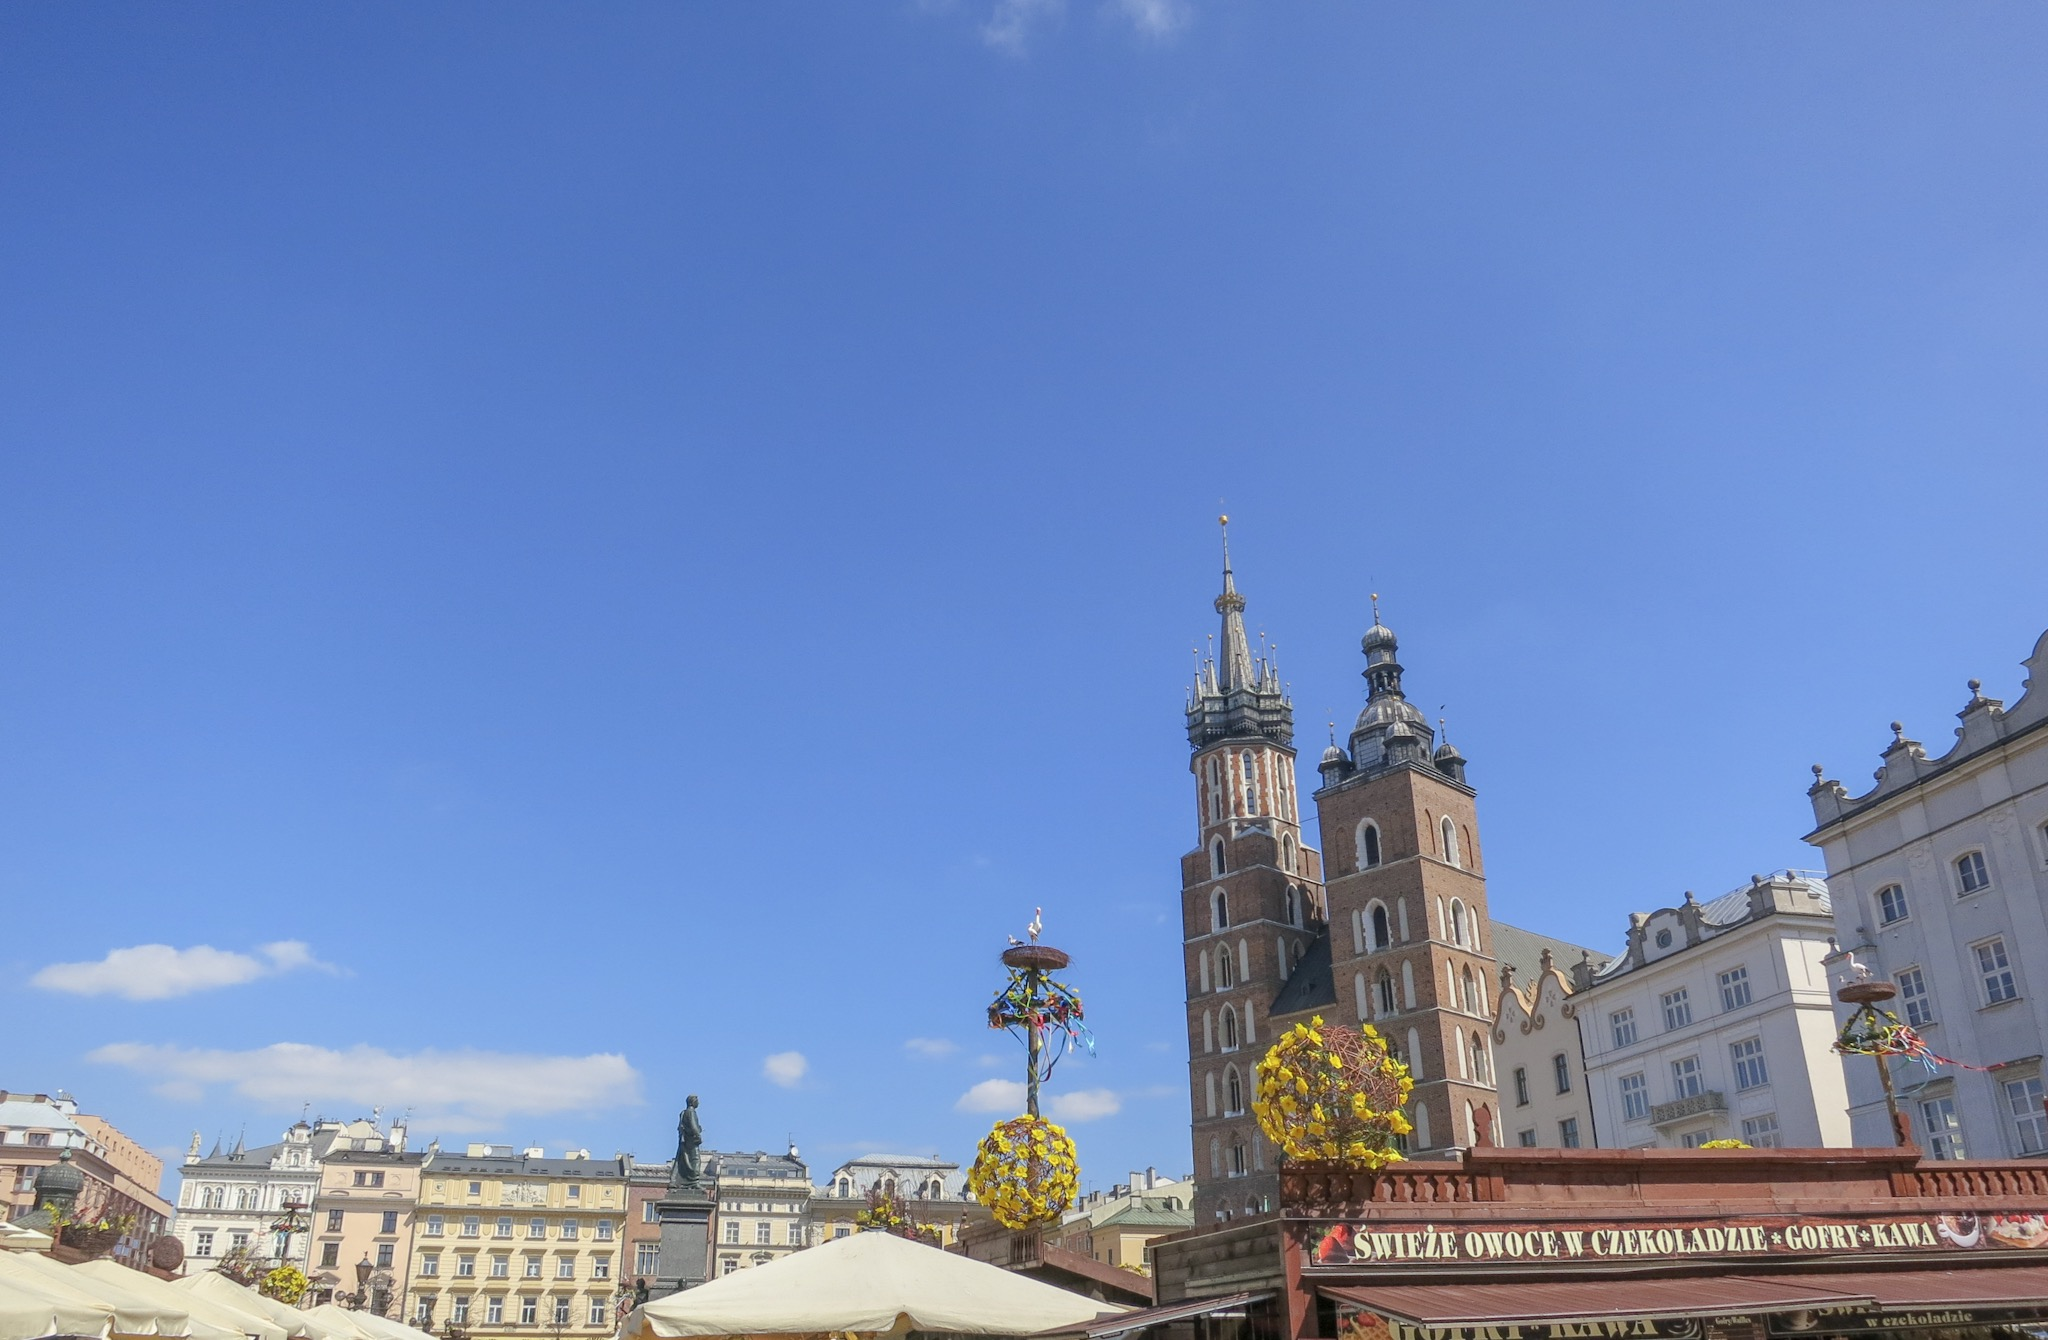 St. Mary's Church at the end of the Krakow Easter Market